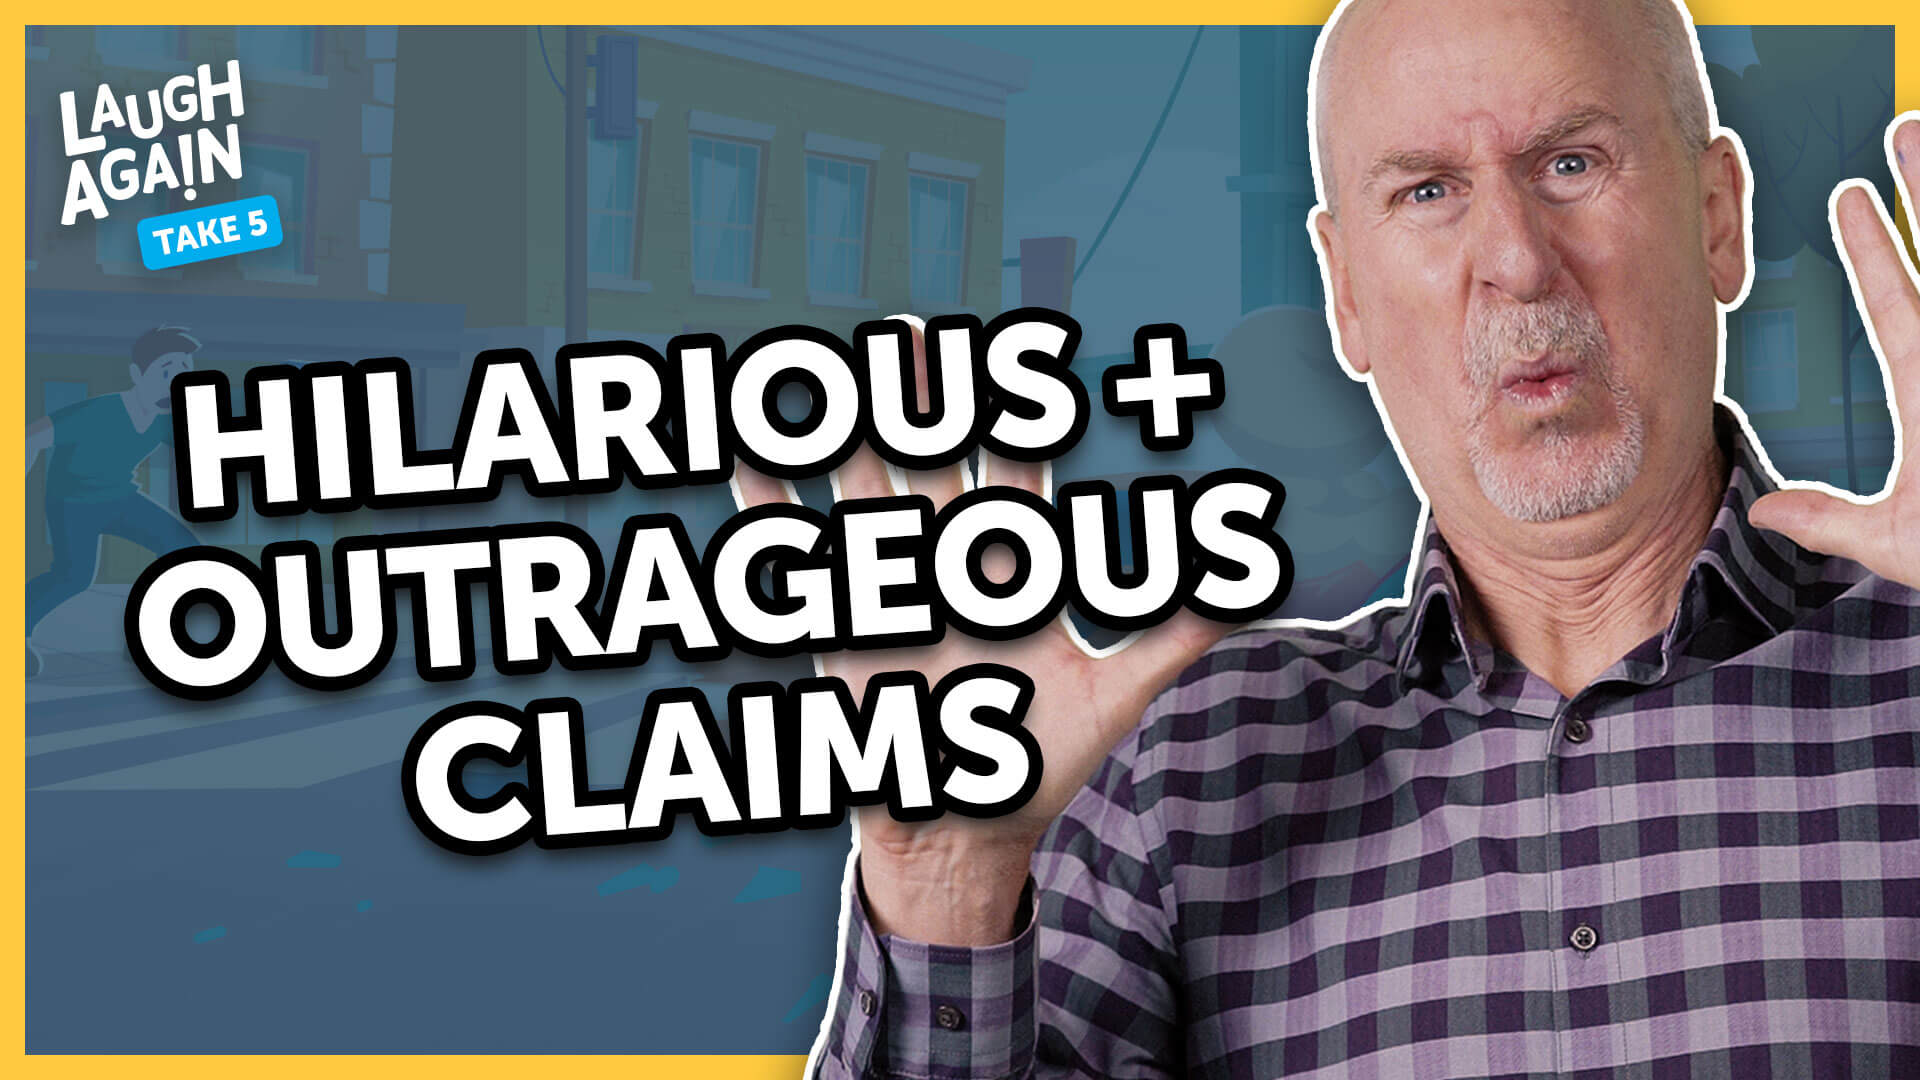 Hilarious and Outrageous Claims | Laugh Again Take 5 with Phil Callaway